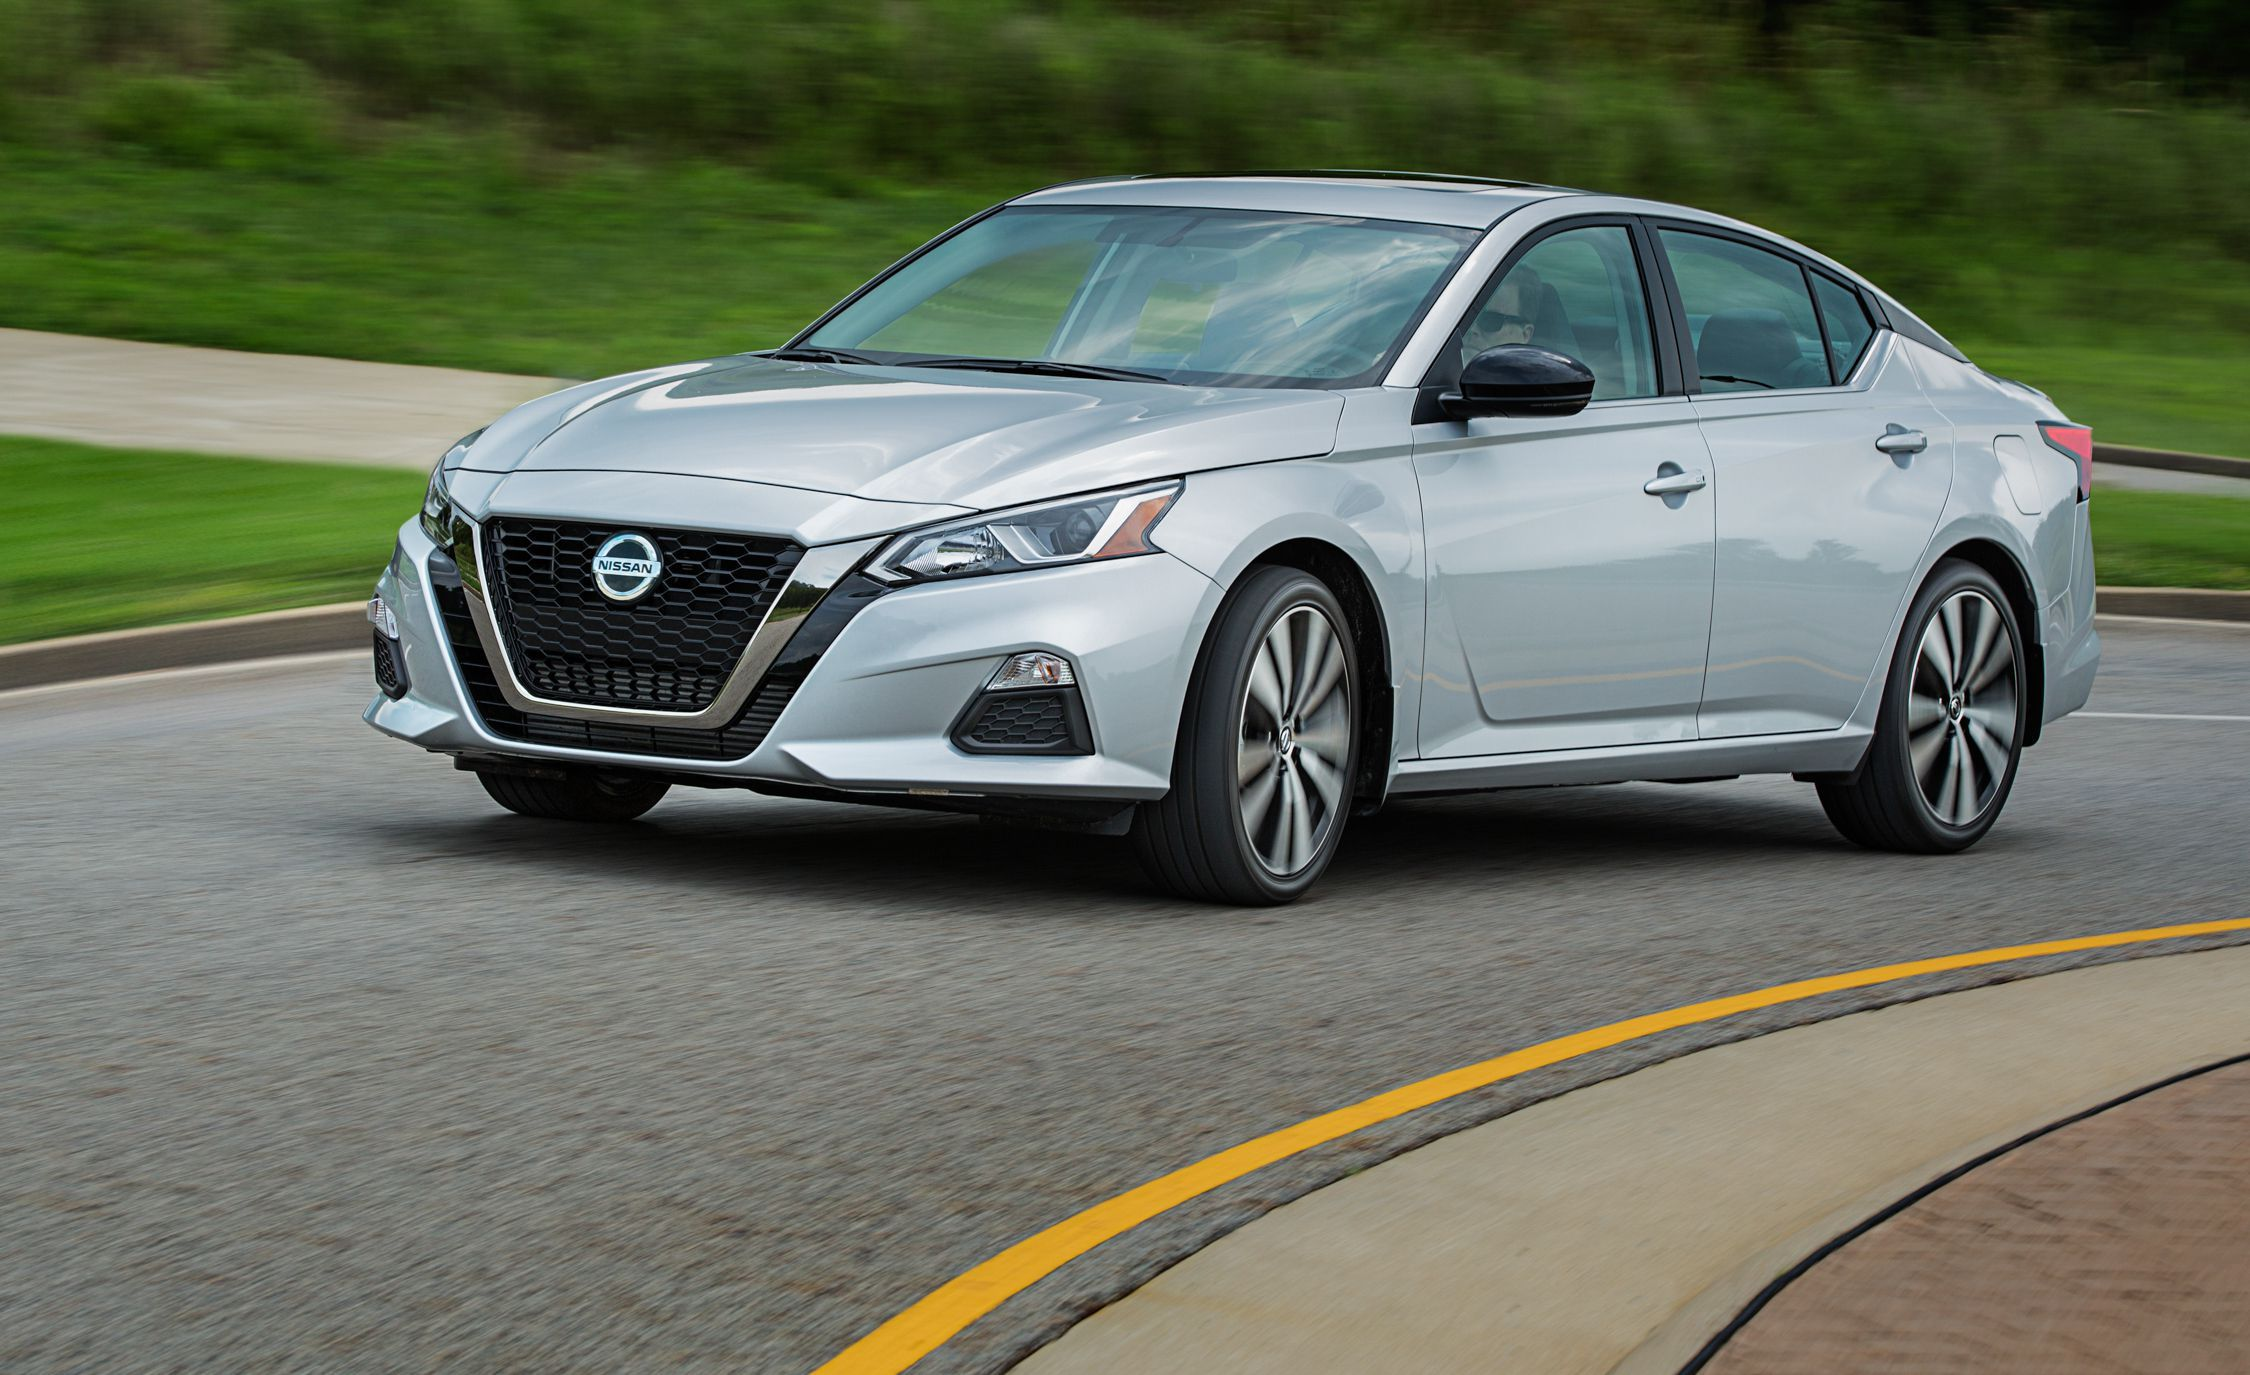 2020 nissan altima review pricing and specs 2006 nissan altima 2 5 engine diagram as well cadillac cts 2007 engine [ 2250 x 1375 Pixel ]